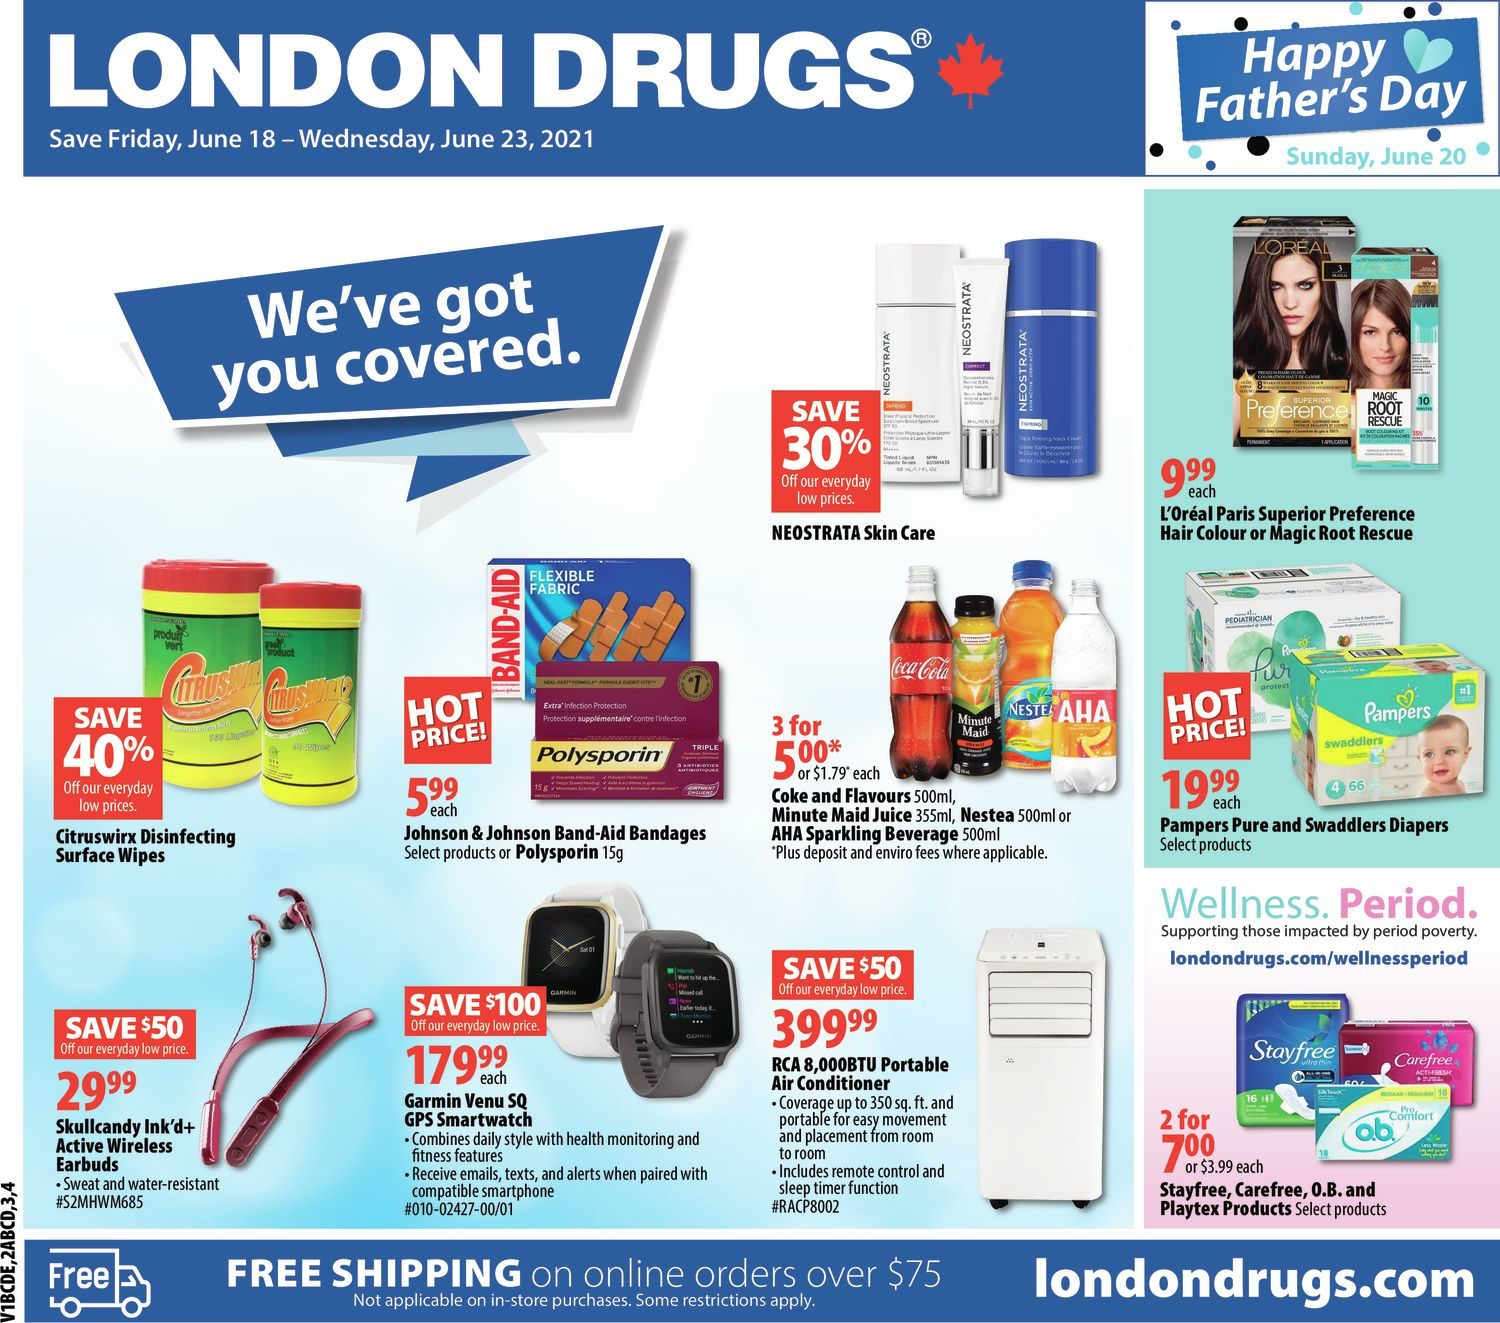 London Drugs - Weekly Flyer Specials - We've Got You Covered